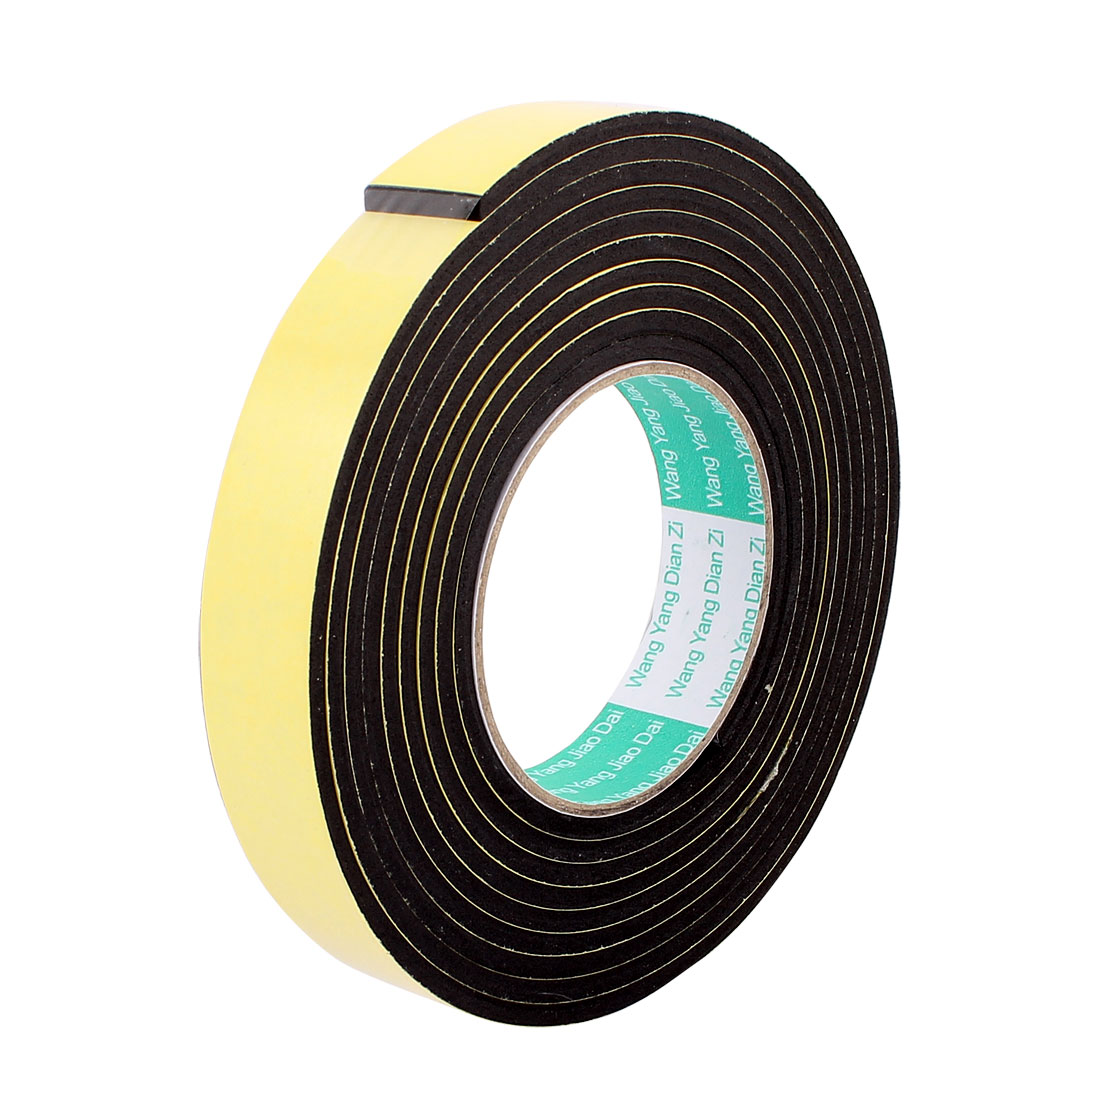 25mmx4mm Single Sided Sponge Tape Adhesive Sticker Foam Glue Strip Sealing 3 Meters 10Ft